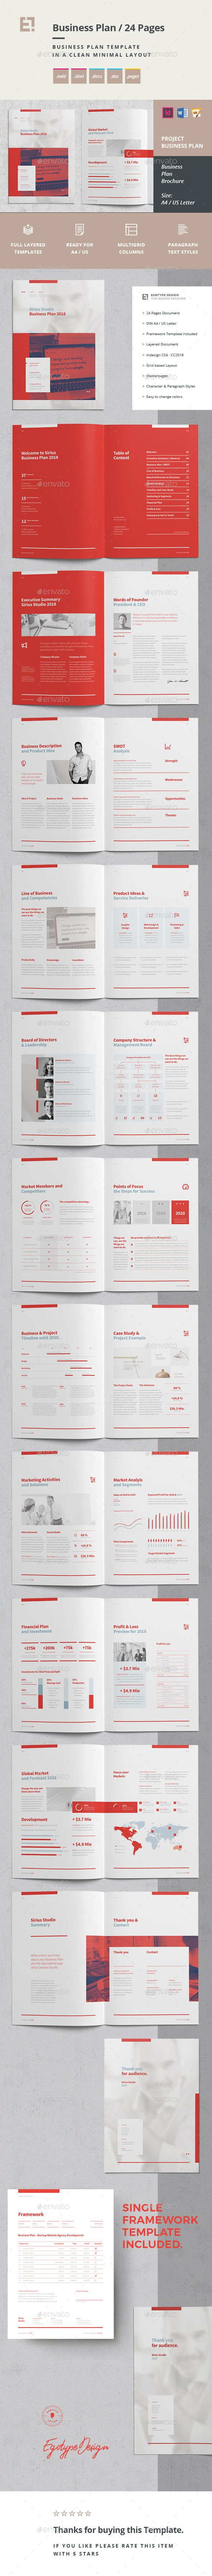 Professional Business Profile Template Business Plan  Business Planning Business Plan Proposal And .